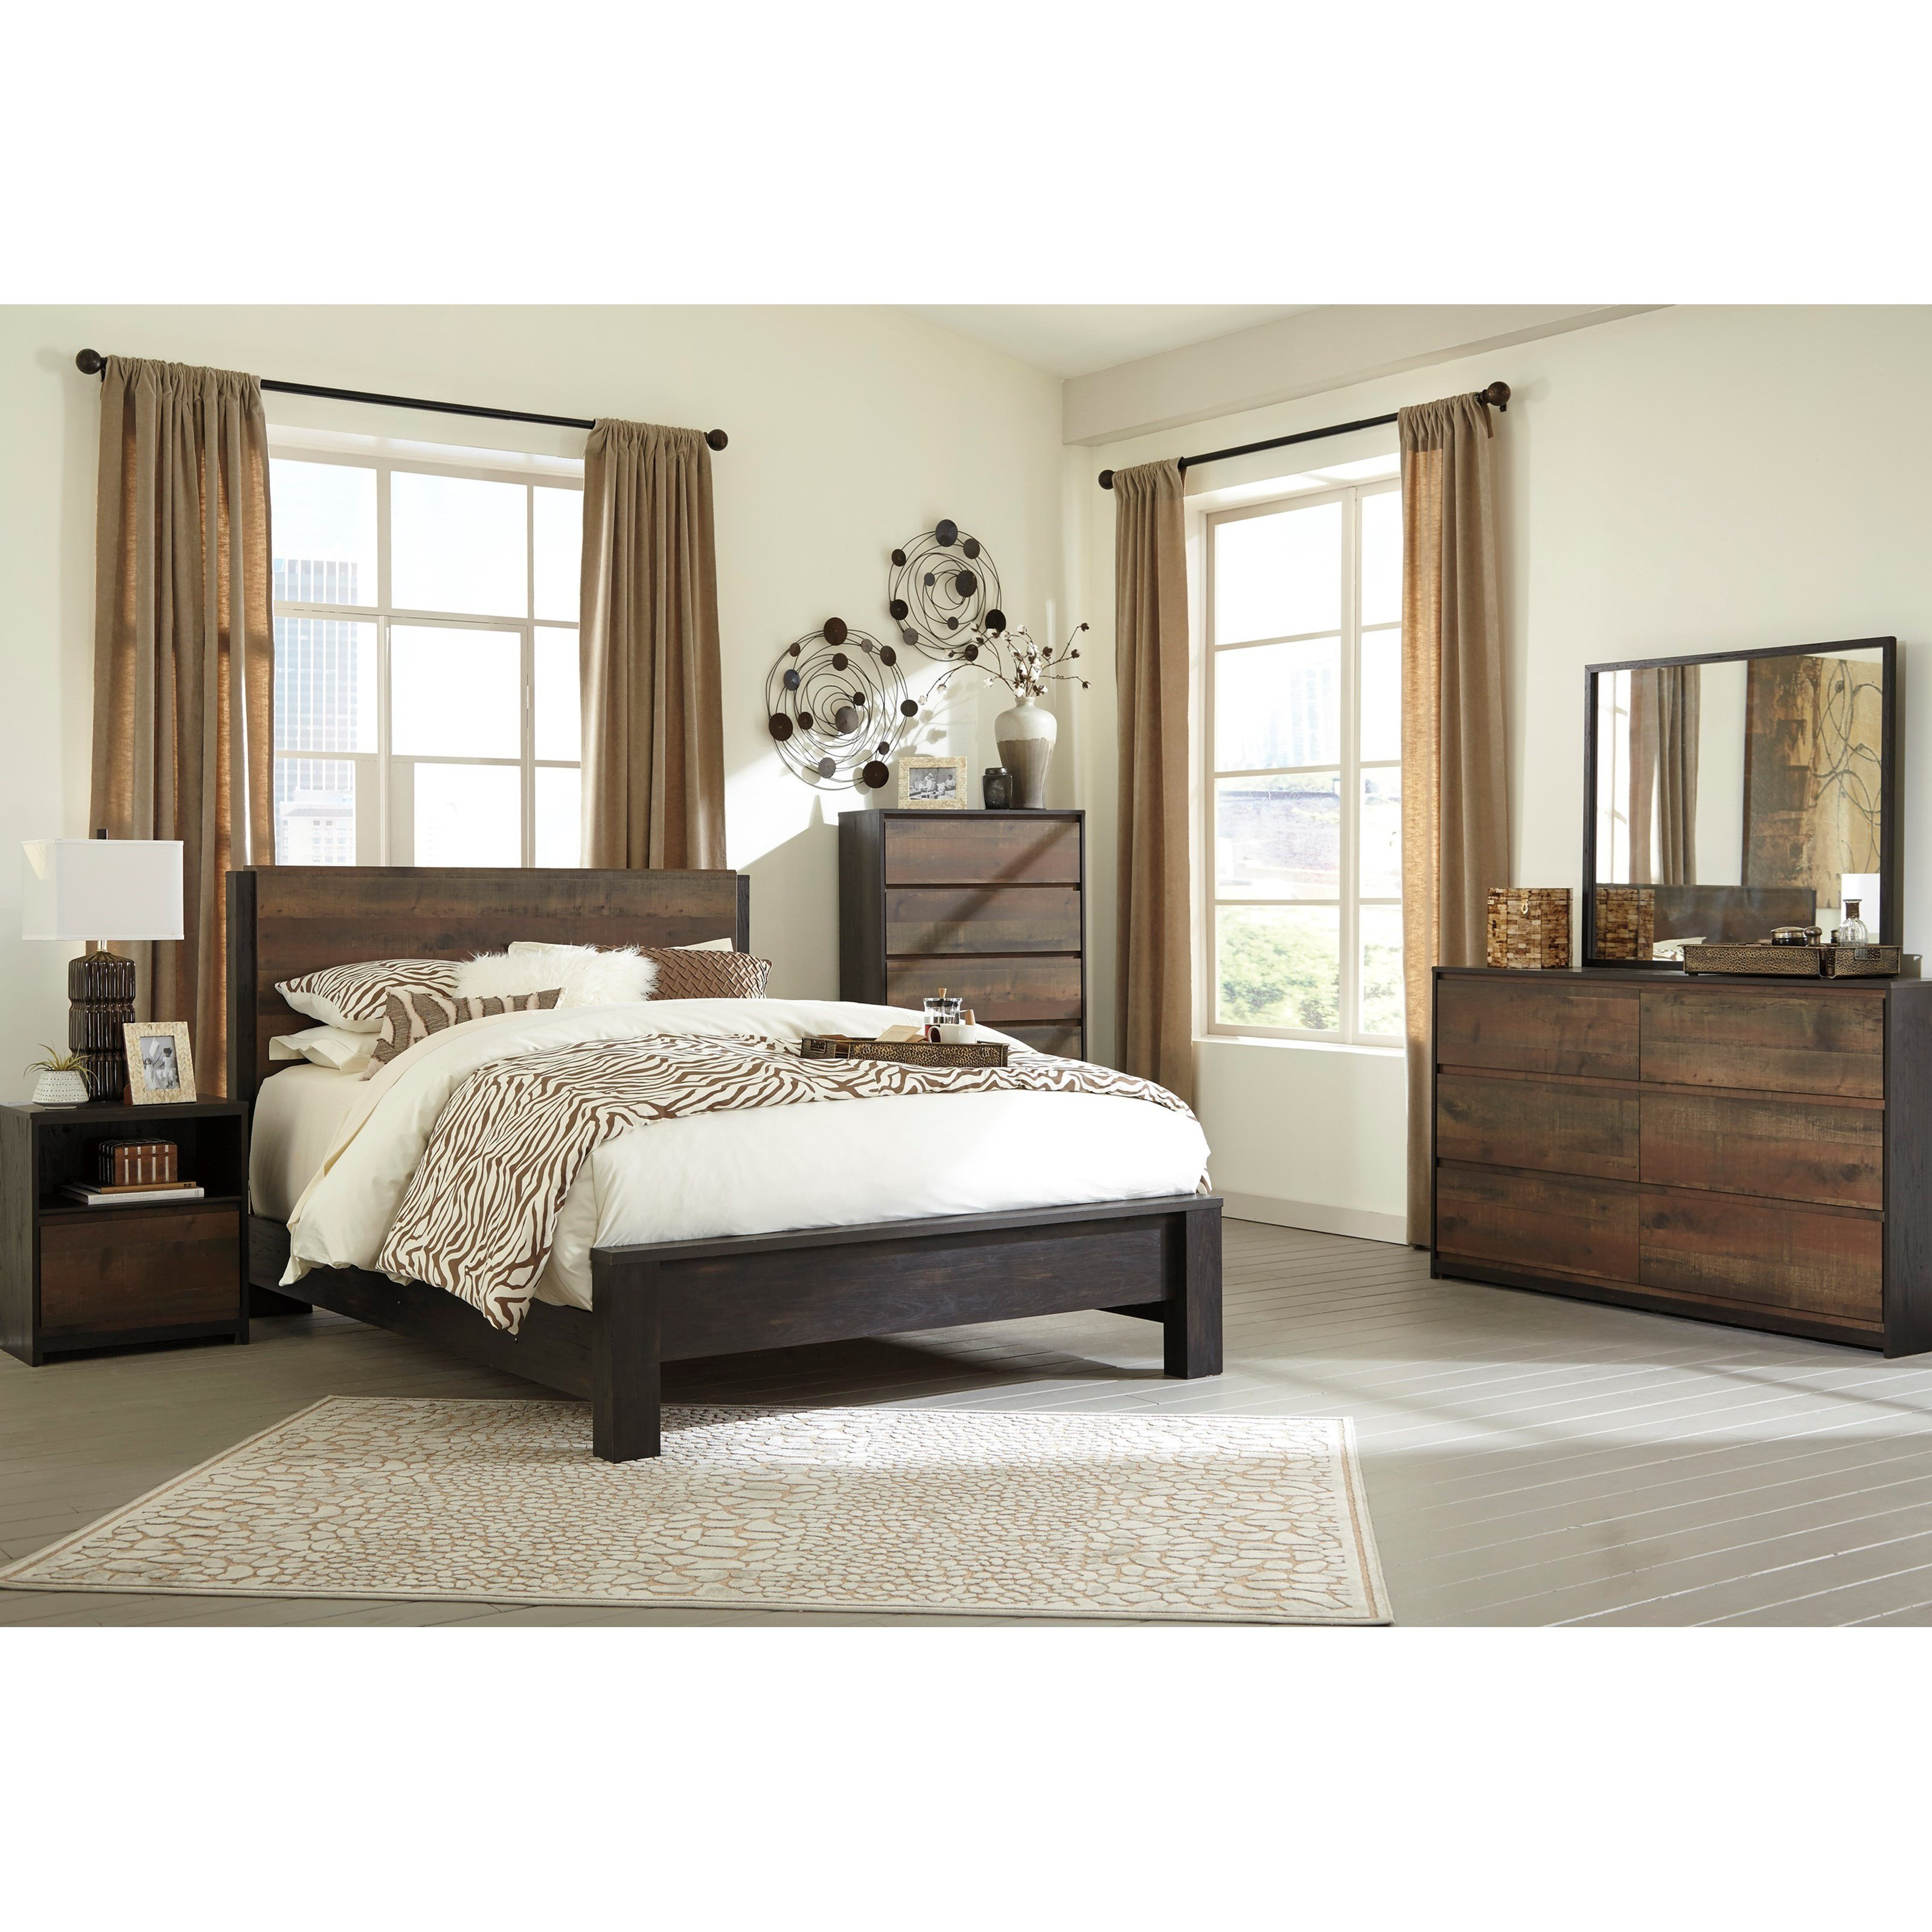 Best Signature Design By Ashley Windlore Queen Bedroom Group With Pictures